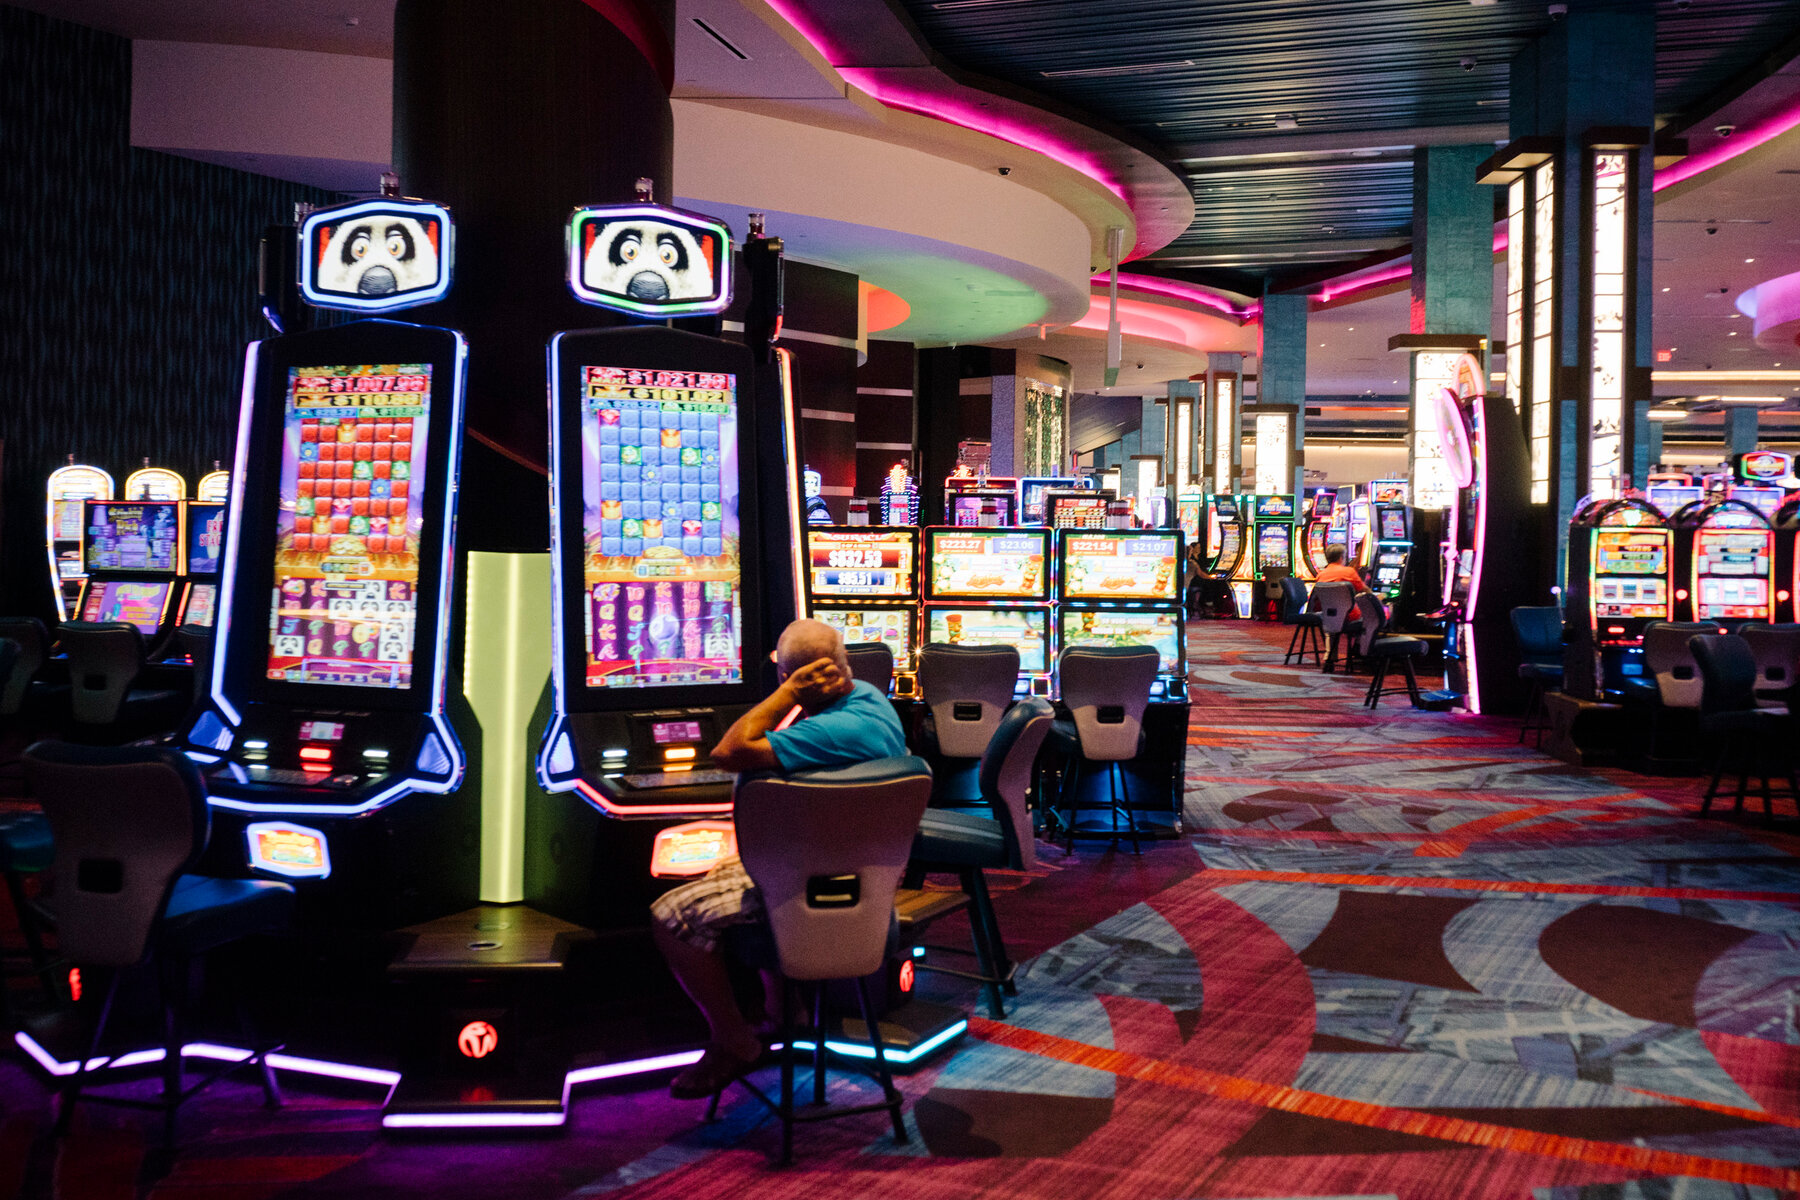 Casinos are making the most of technology